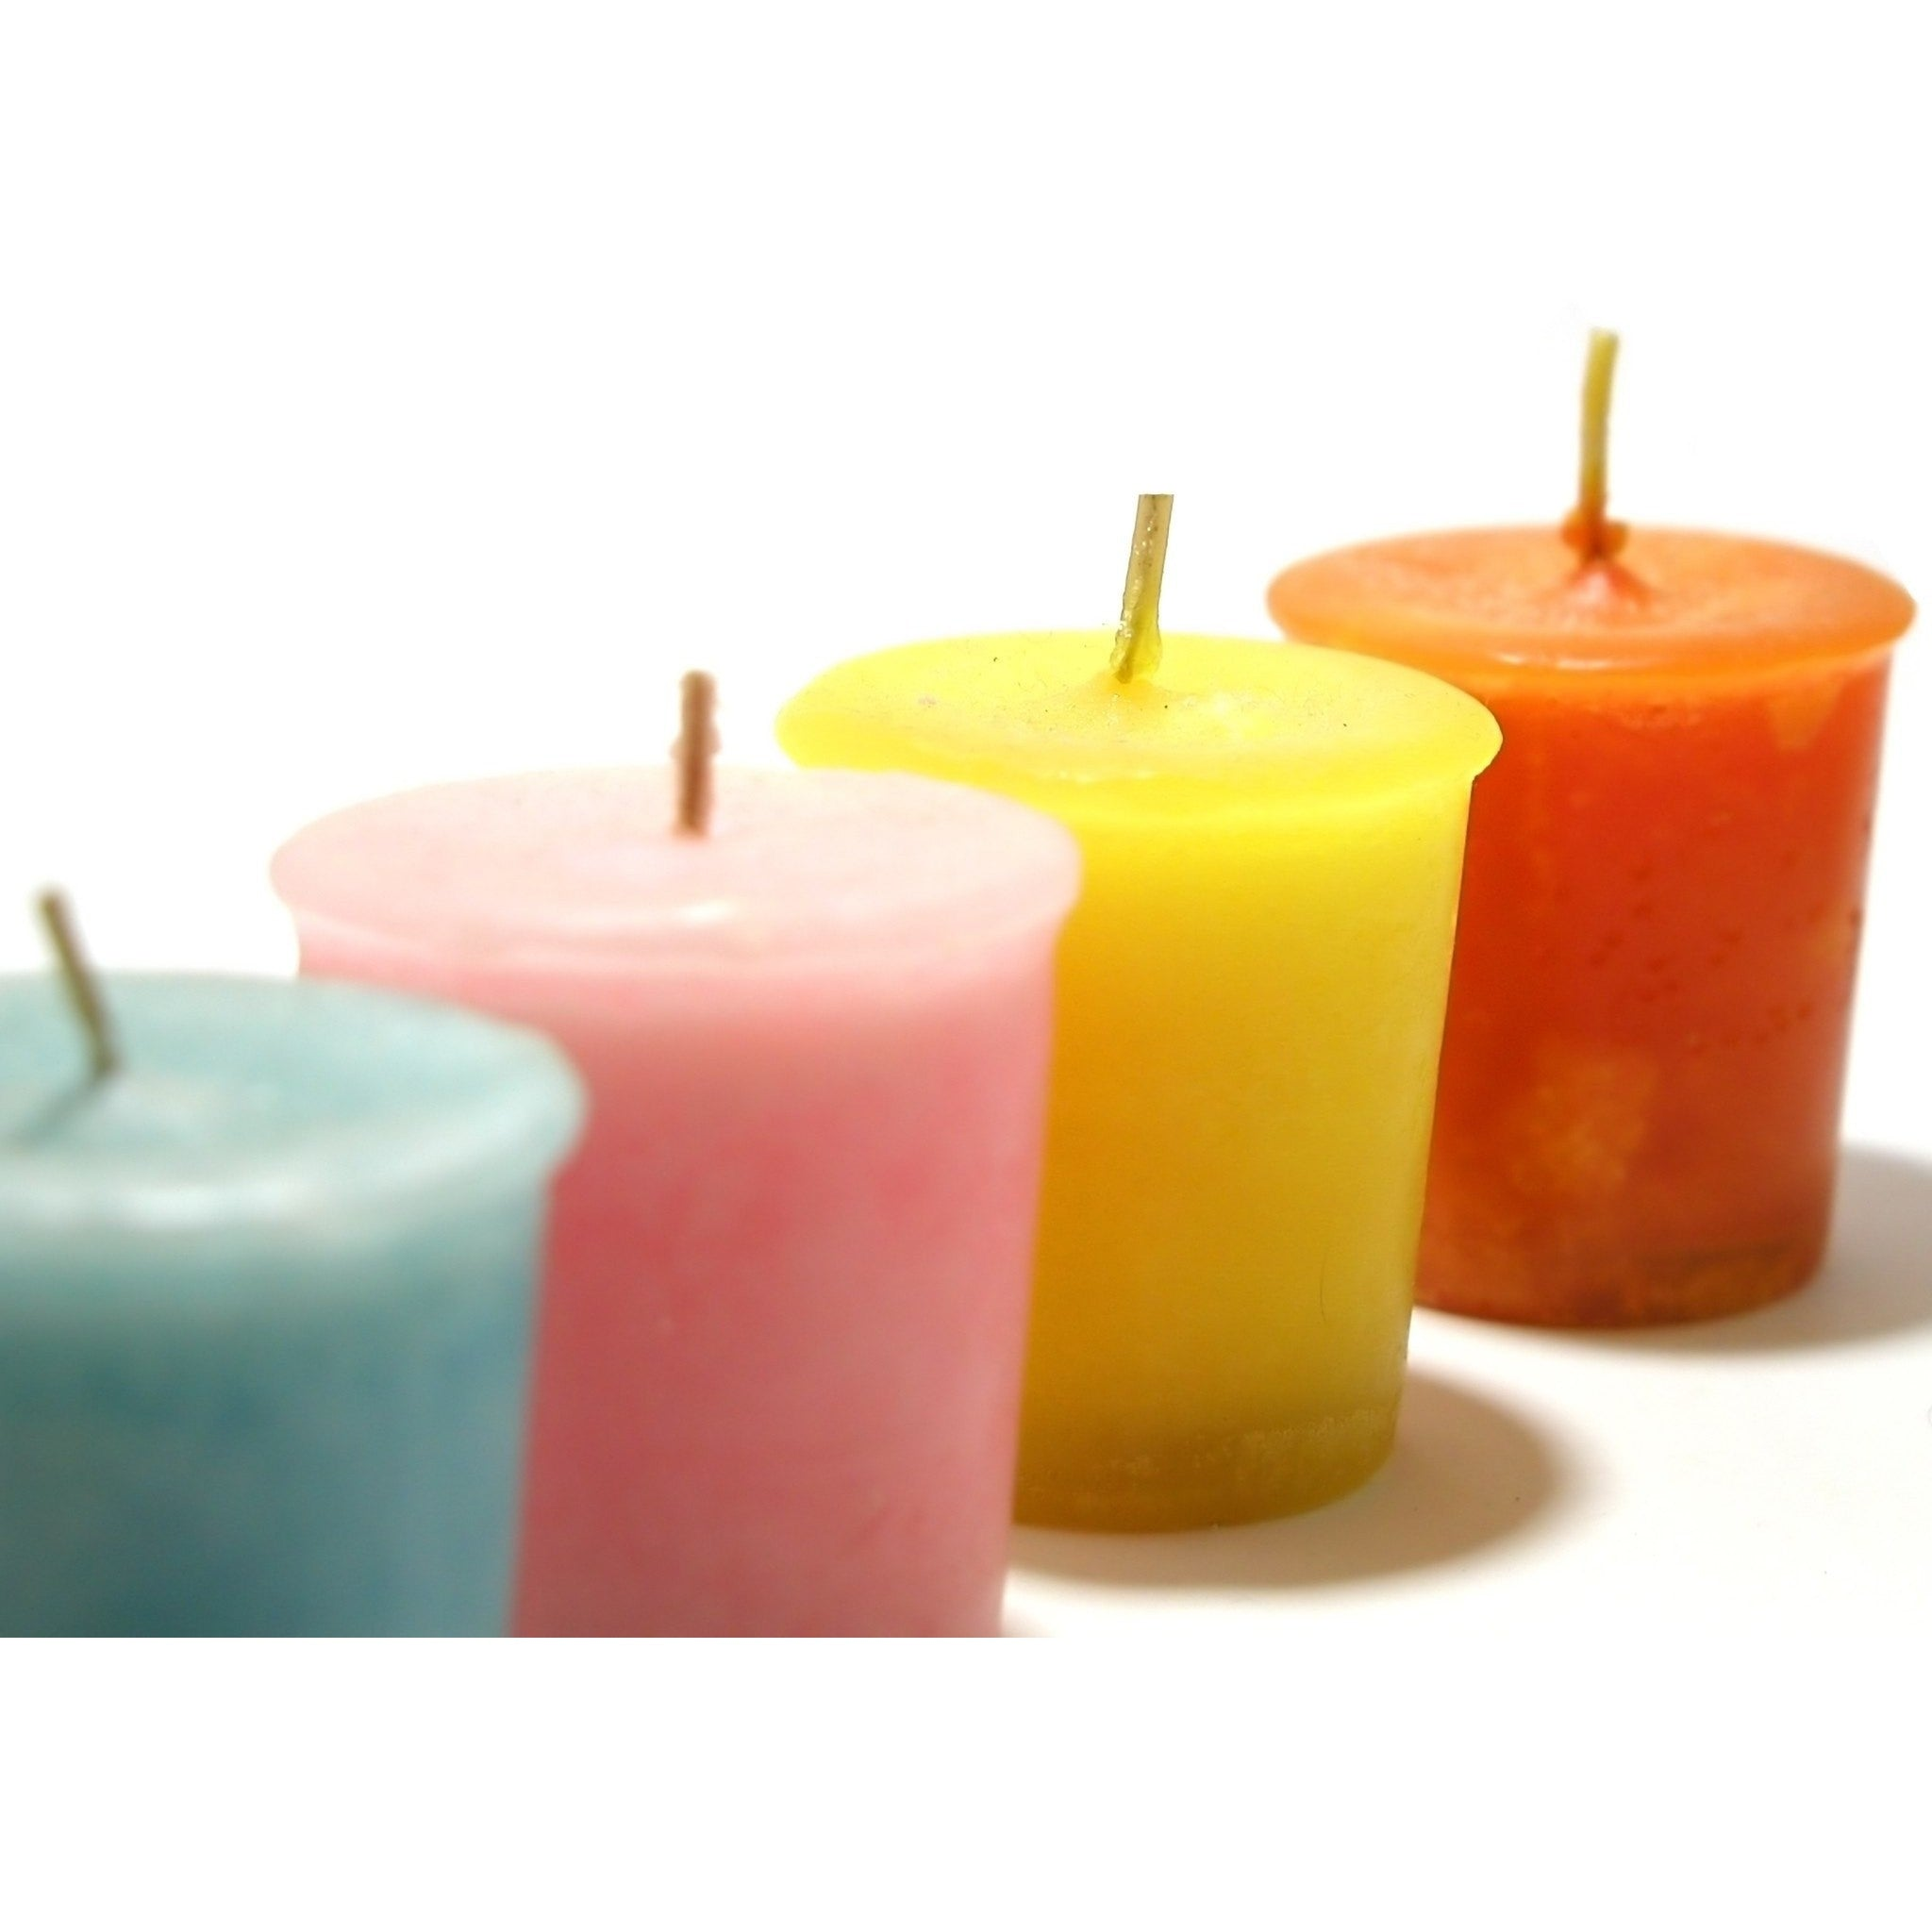 Clean Cotton-Sky Natural Hand Poured Soy Candles - Votive-Single - Bella-Mia Naturals All Natural Soy Candles & Lip Balms - 10